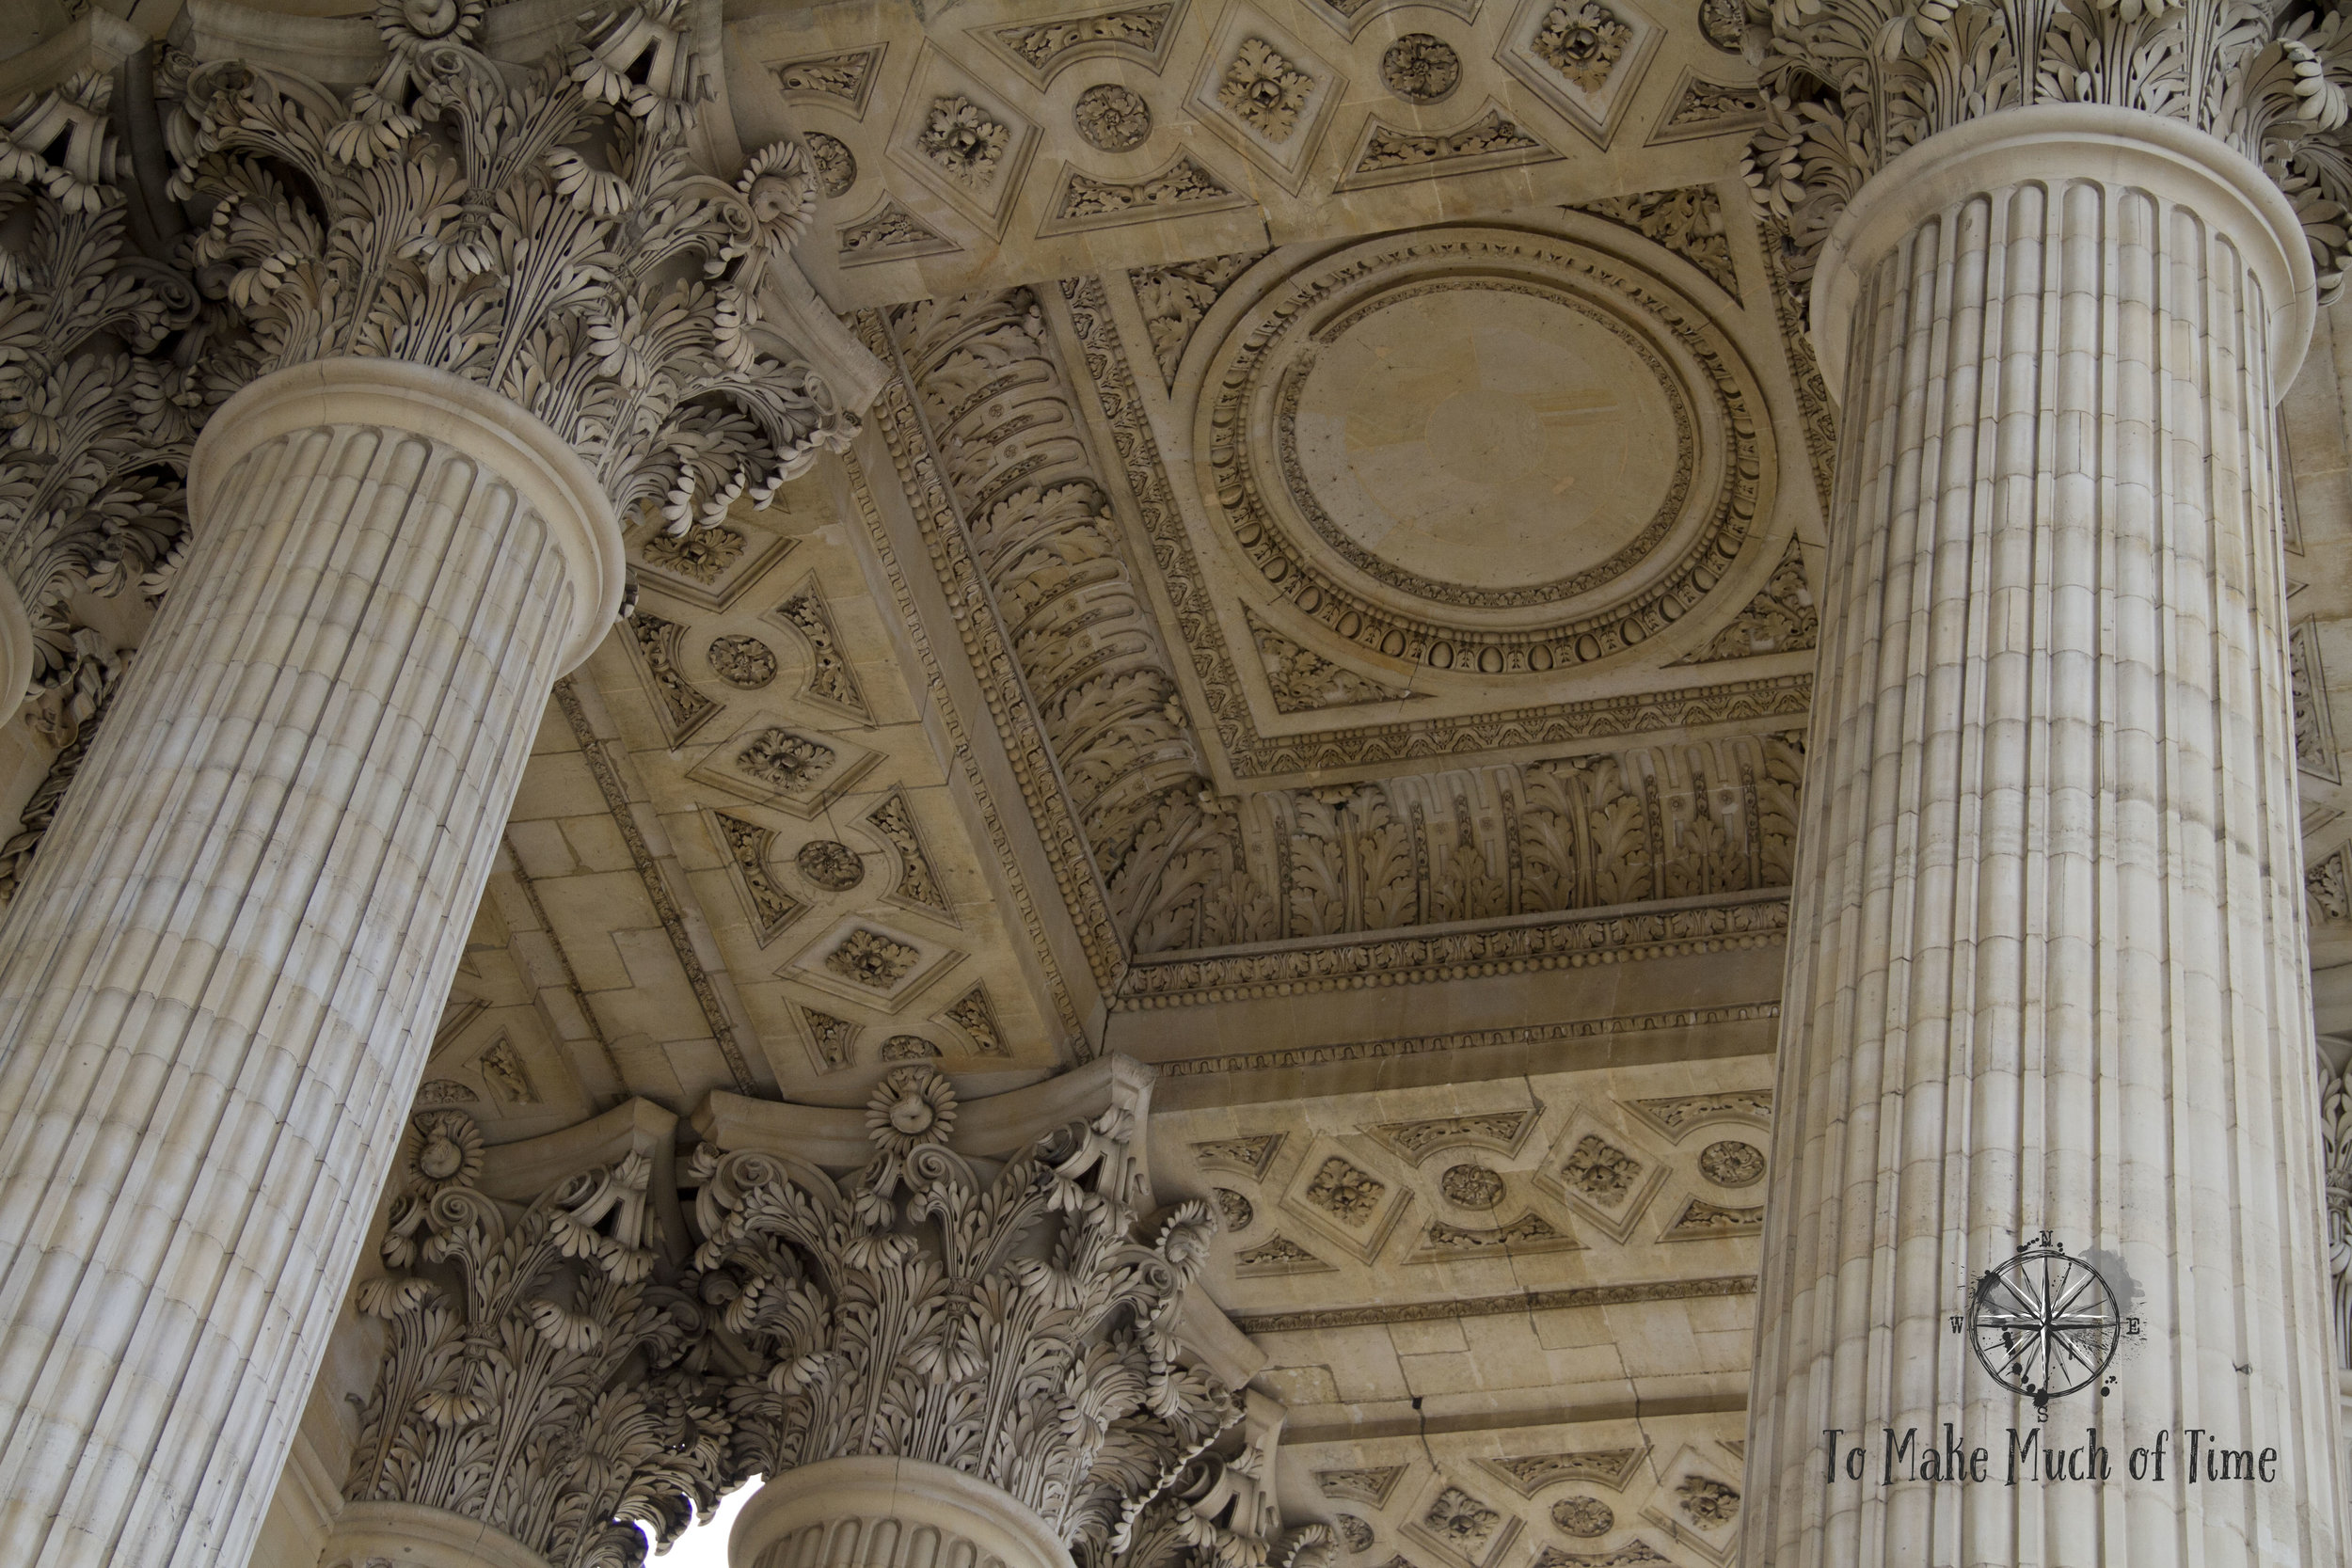 From the columns to the ceiling and floors, everything at the Pantheon is decorated and embellished.